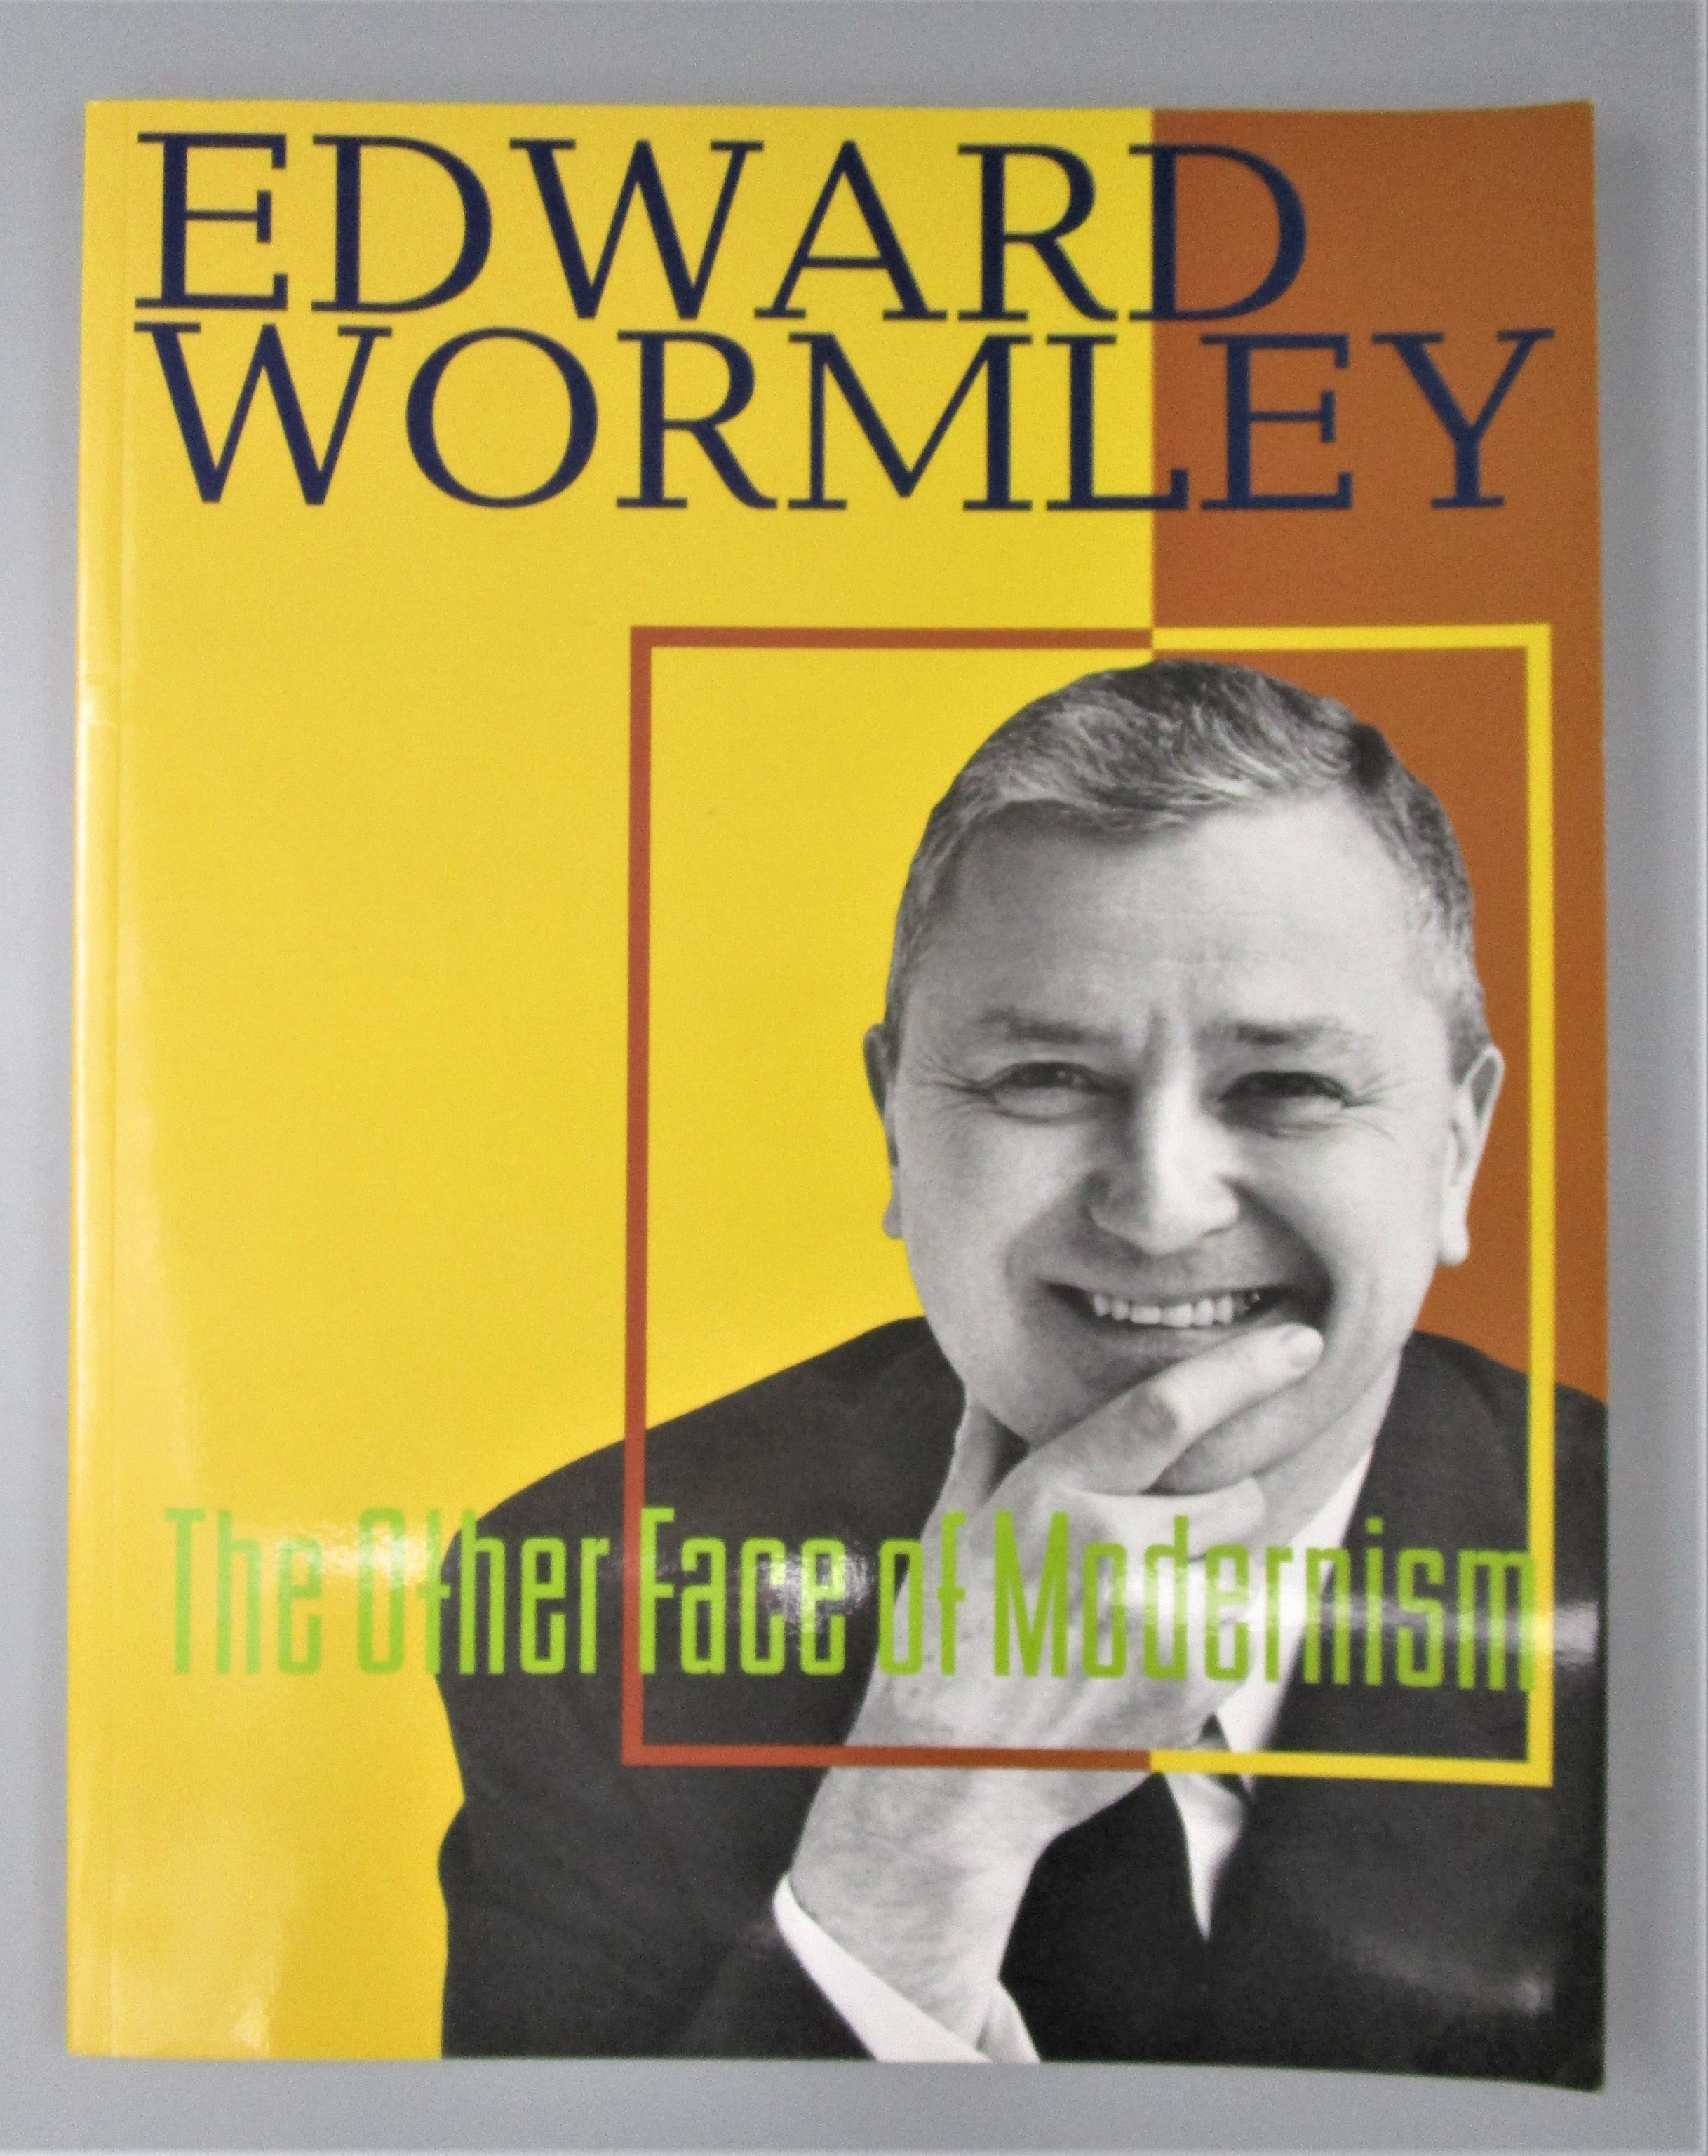 EDWARD WORMLEY: THE OTHER FACE OF MODERNISM, by Judith Gura - 1997